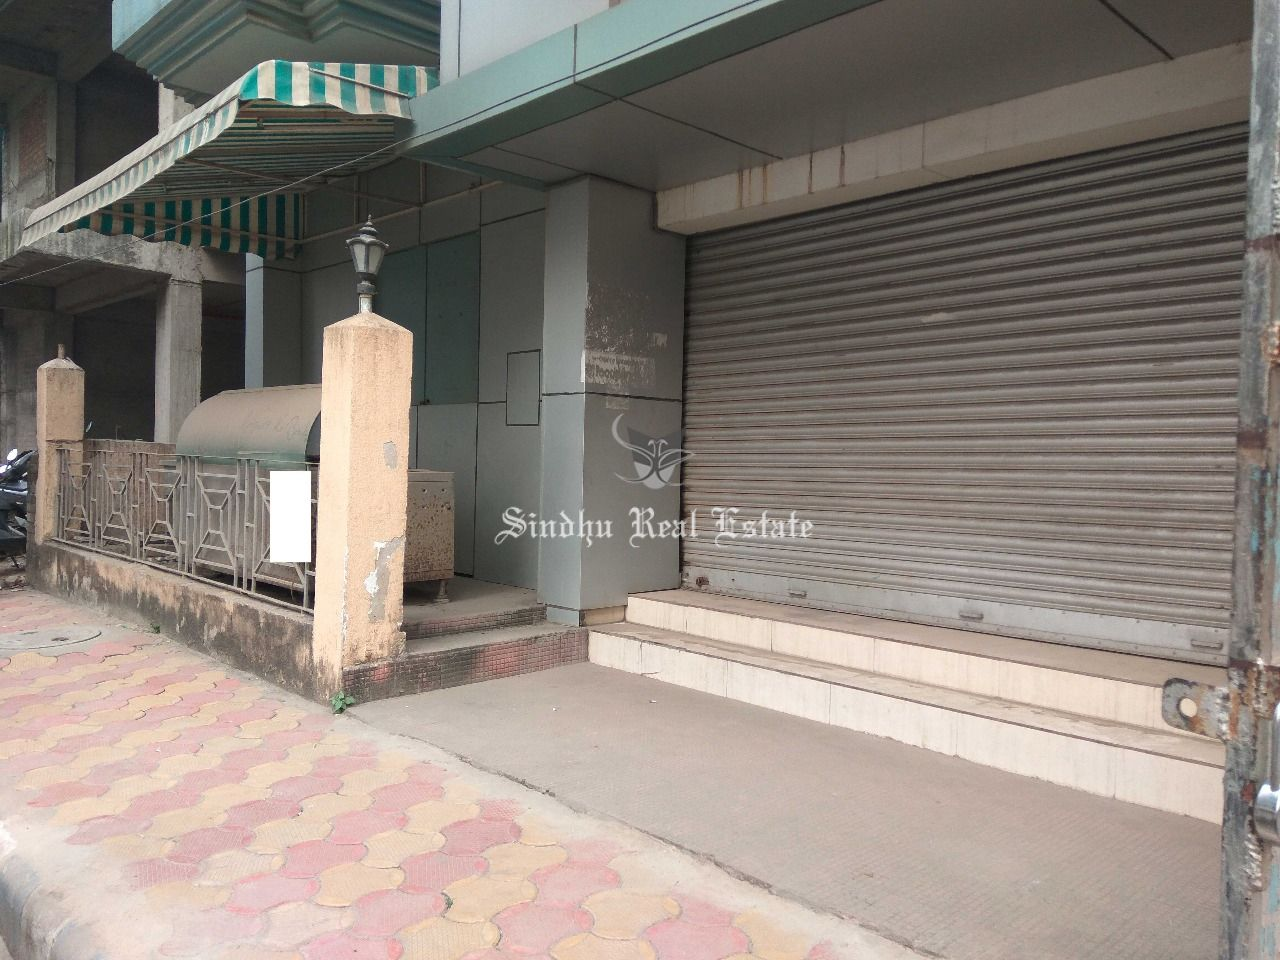 Furnished and Road Side Retail Shop in a Low Budget